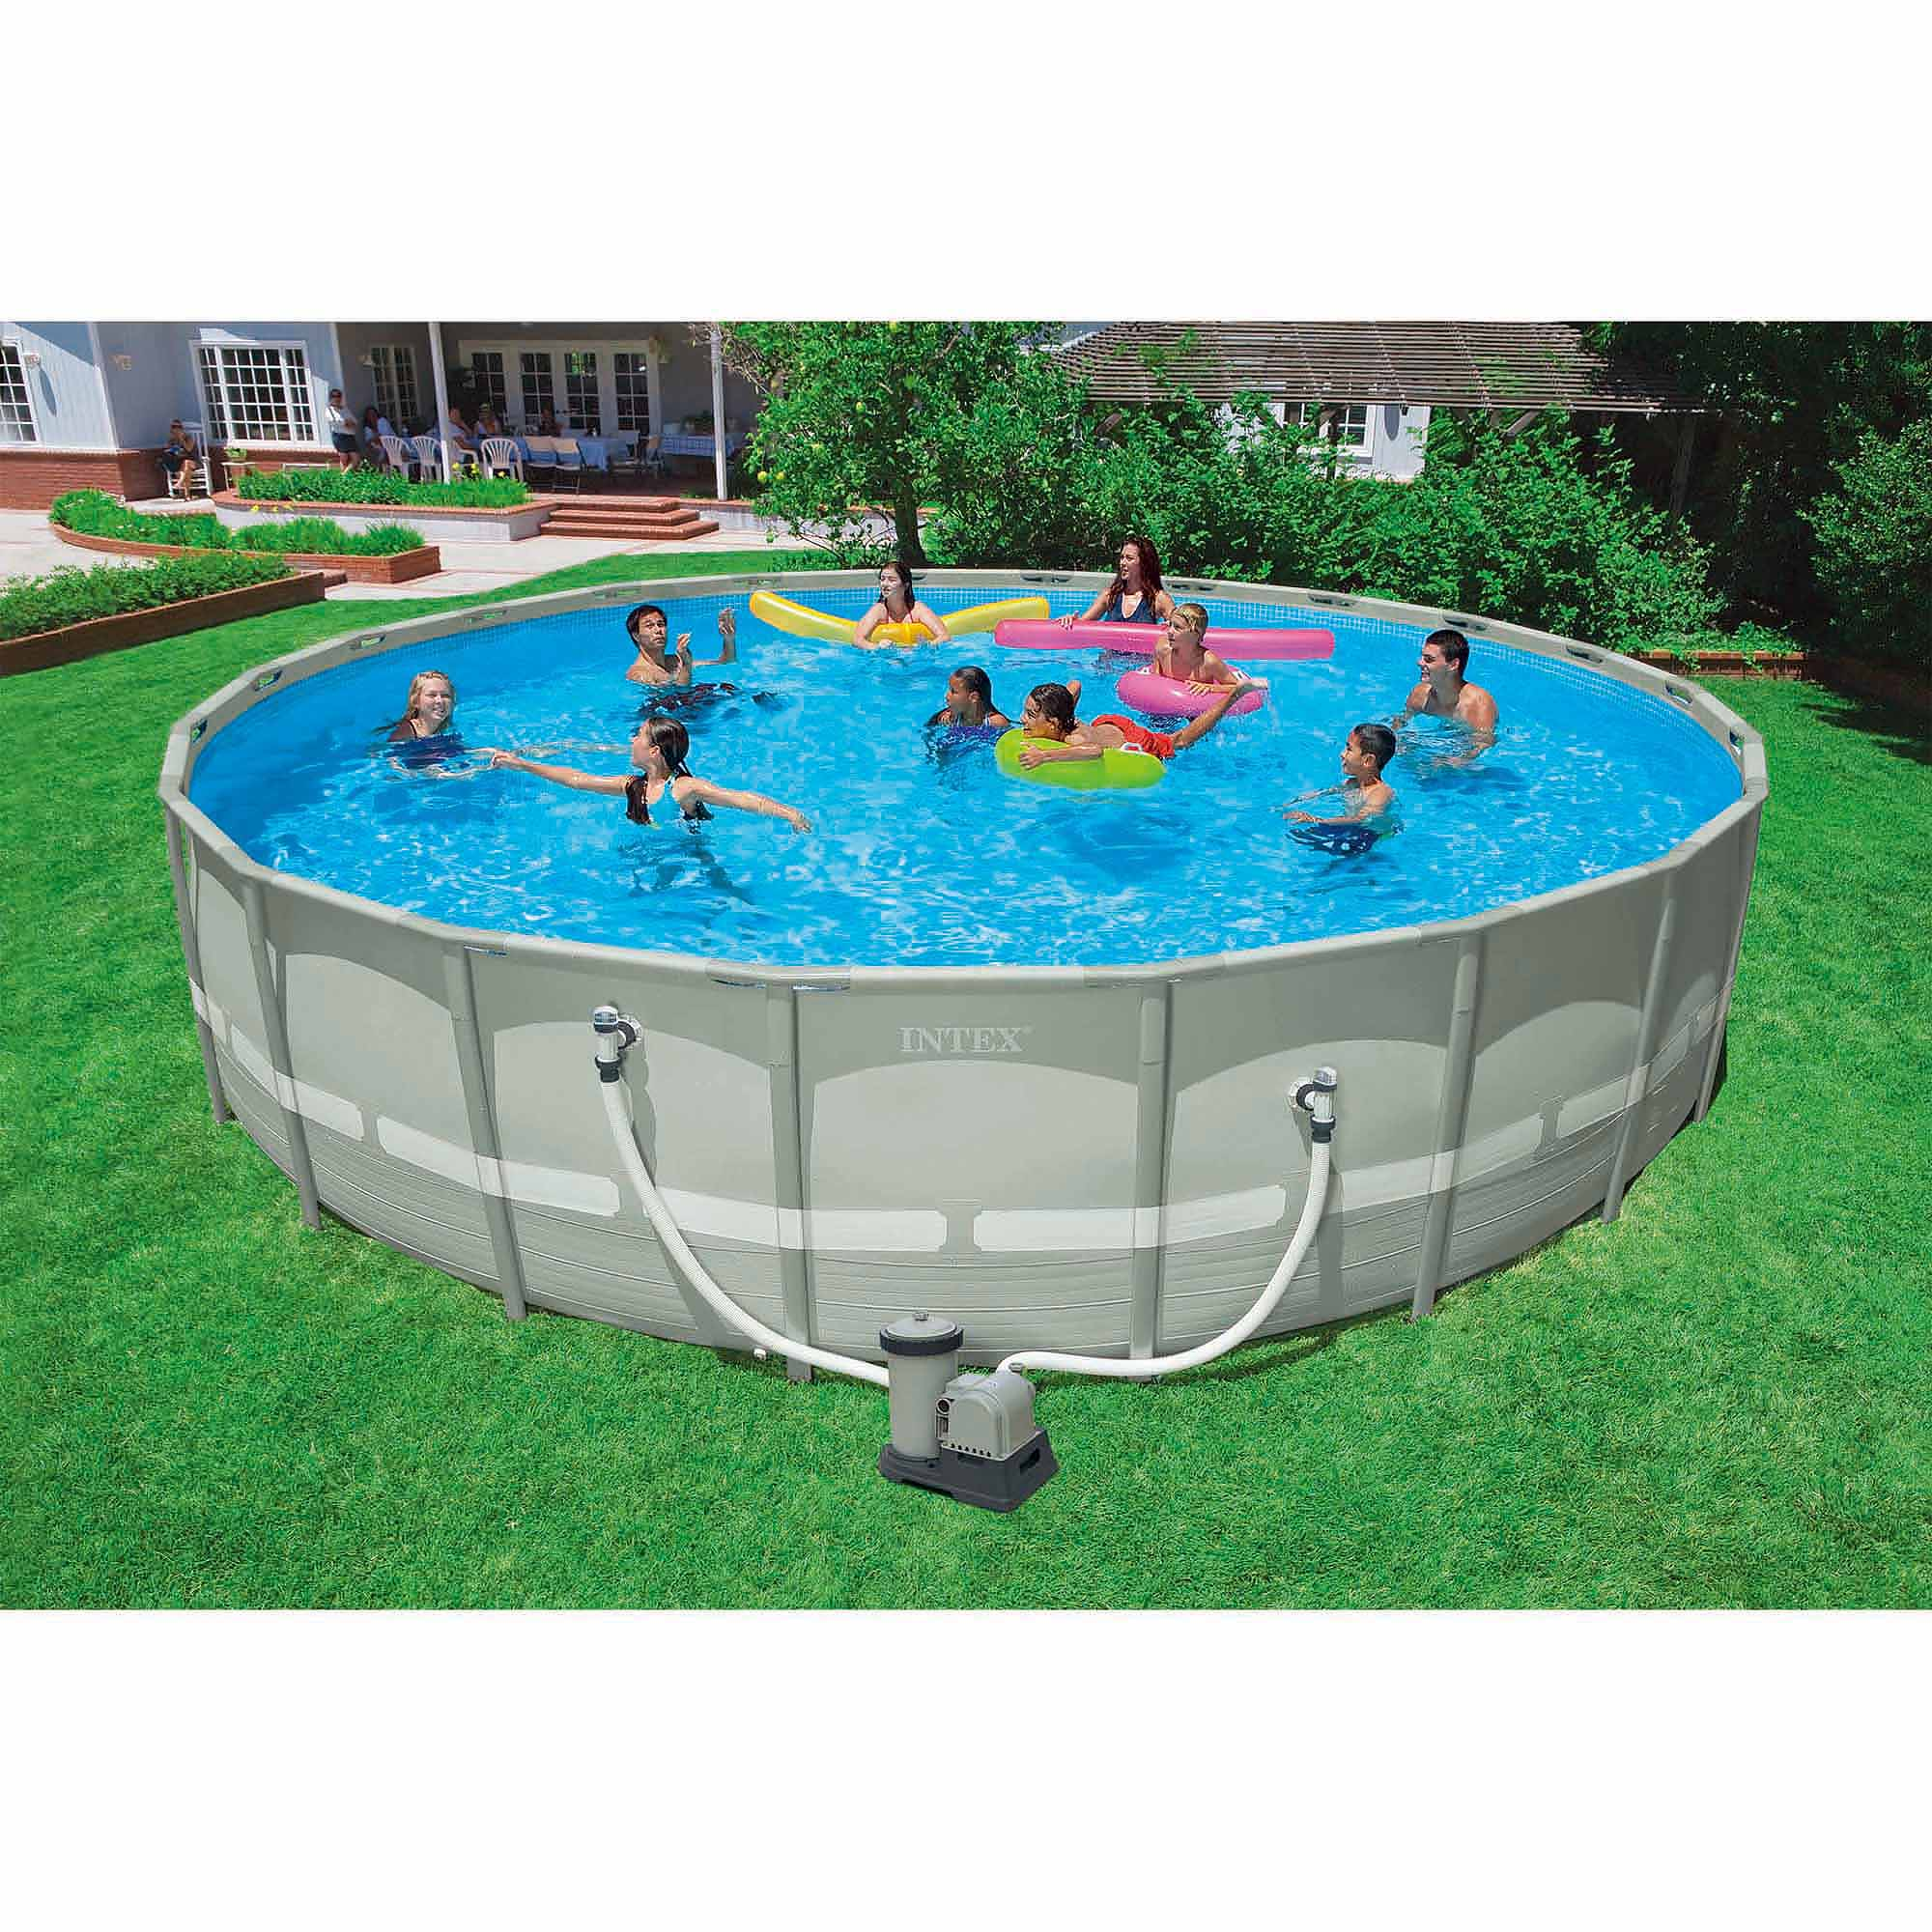 intex 22 x 52 ultra frame swimming pool walmartcom